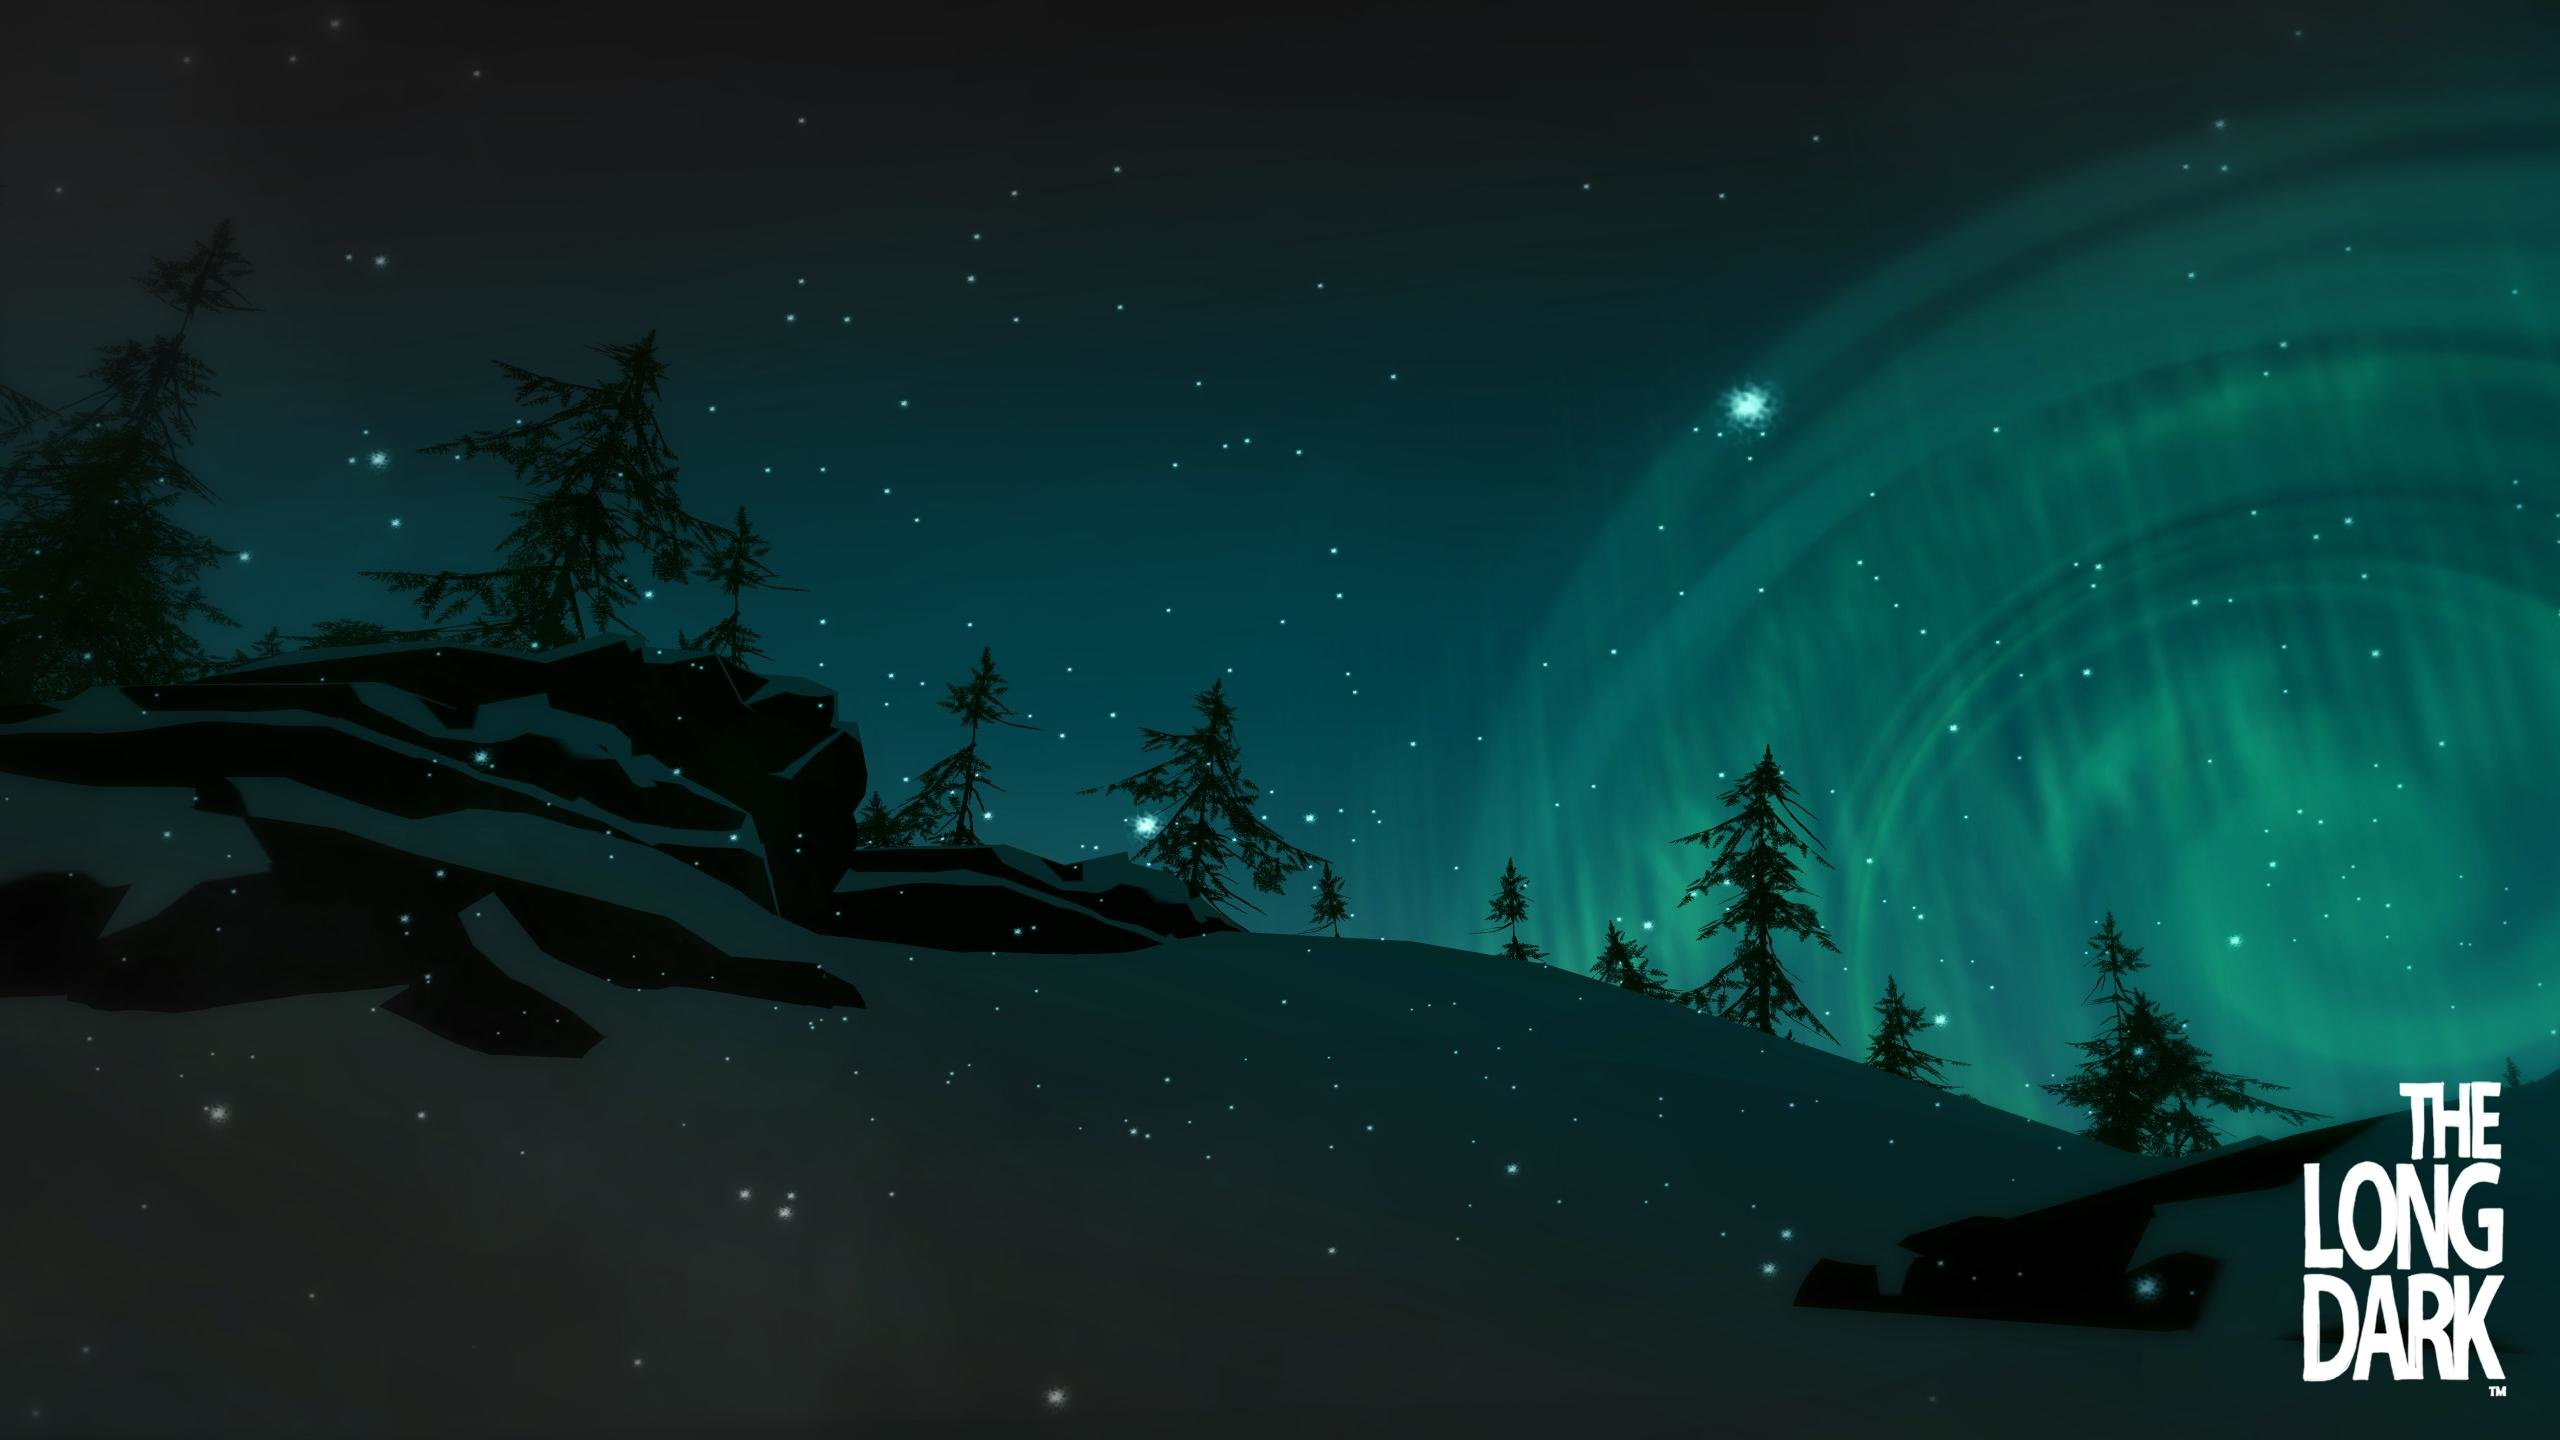 The Long Dark Wallpapers Hd For Desktop Backgrounds